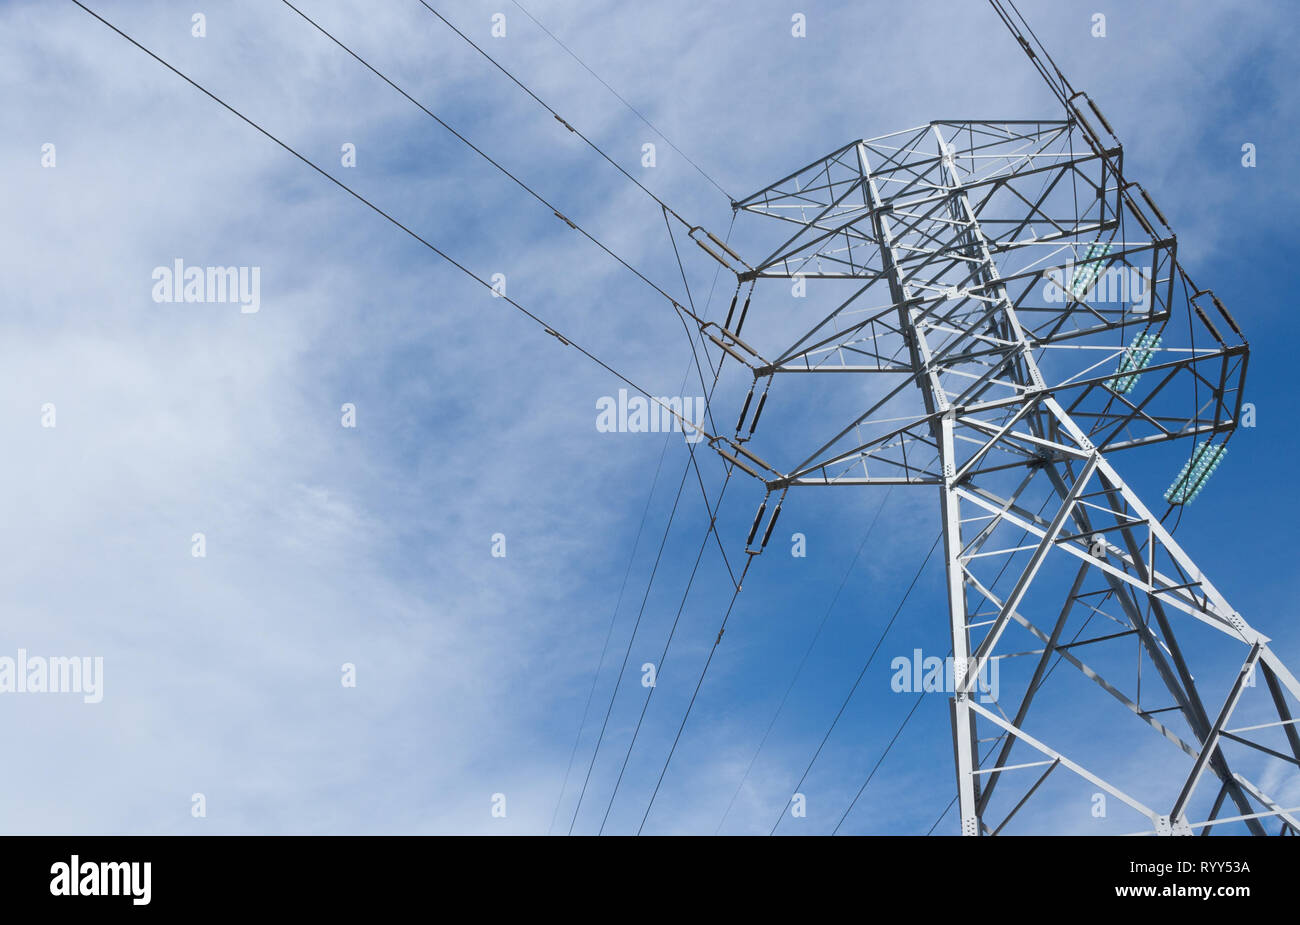 High voltage power lines going through a tower - Stock Image